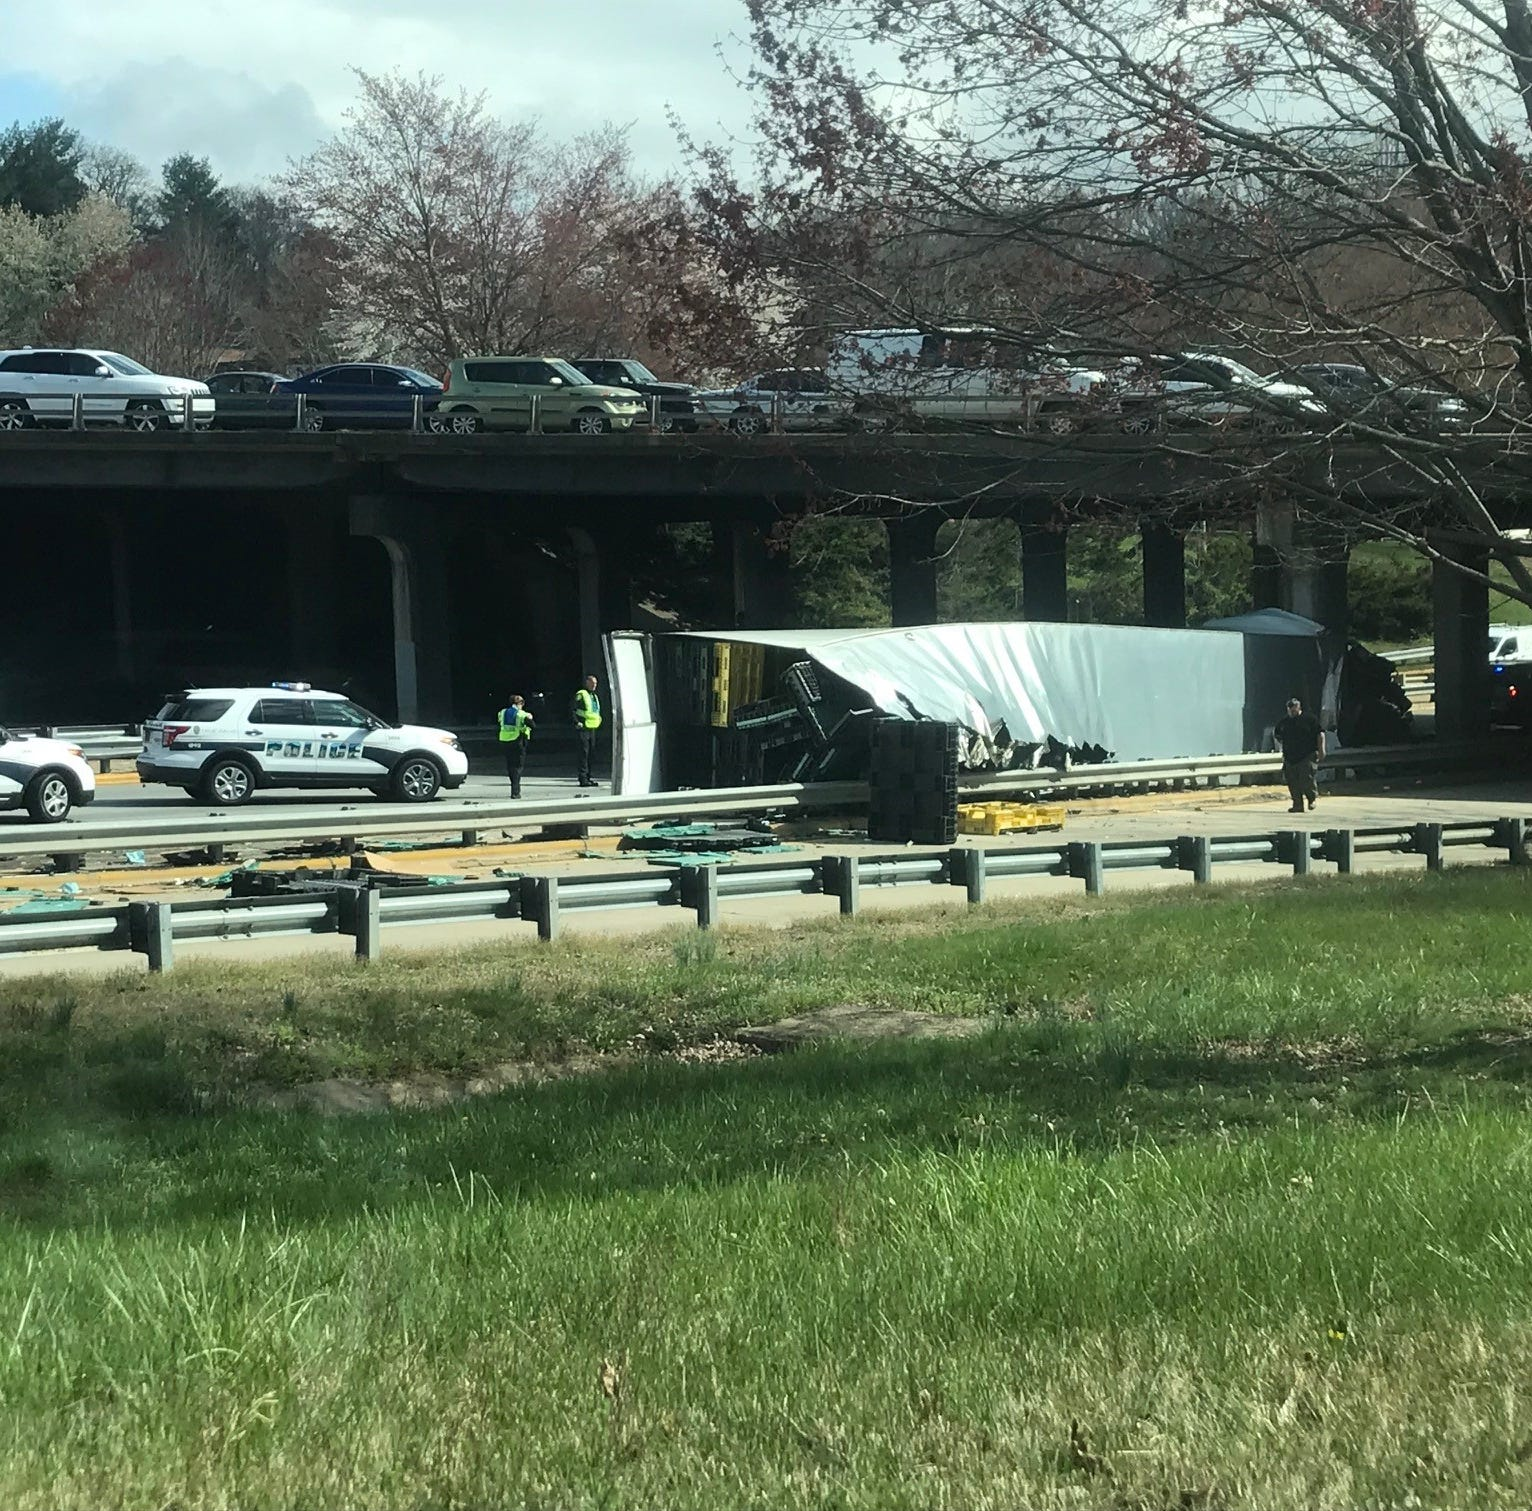 A tractor-trailer flipped over at about 3:15 p.m. Tuesday on Jackson's Curve on I-240 eastbound, snarling traffic on the Bowen Bridge and in downtown.